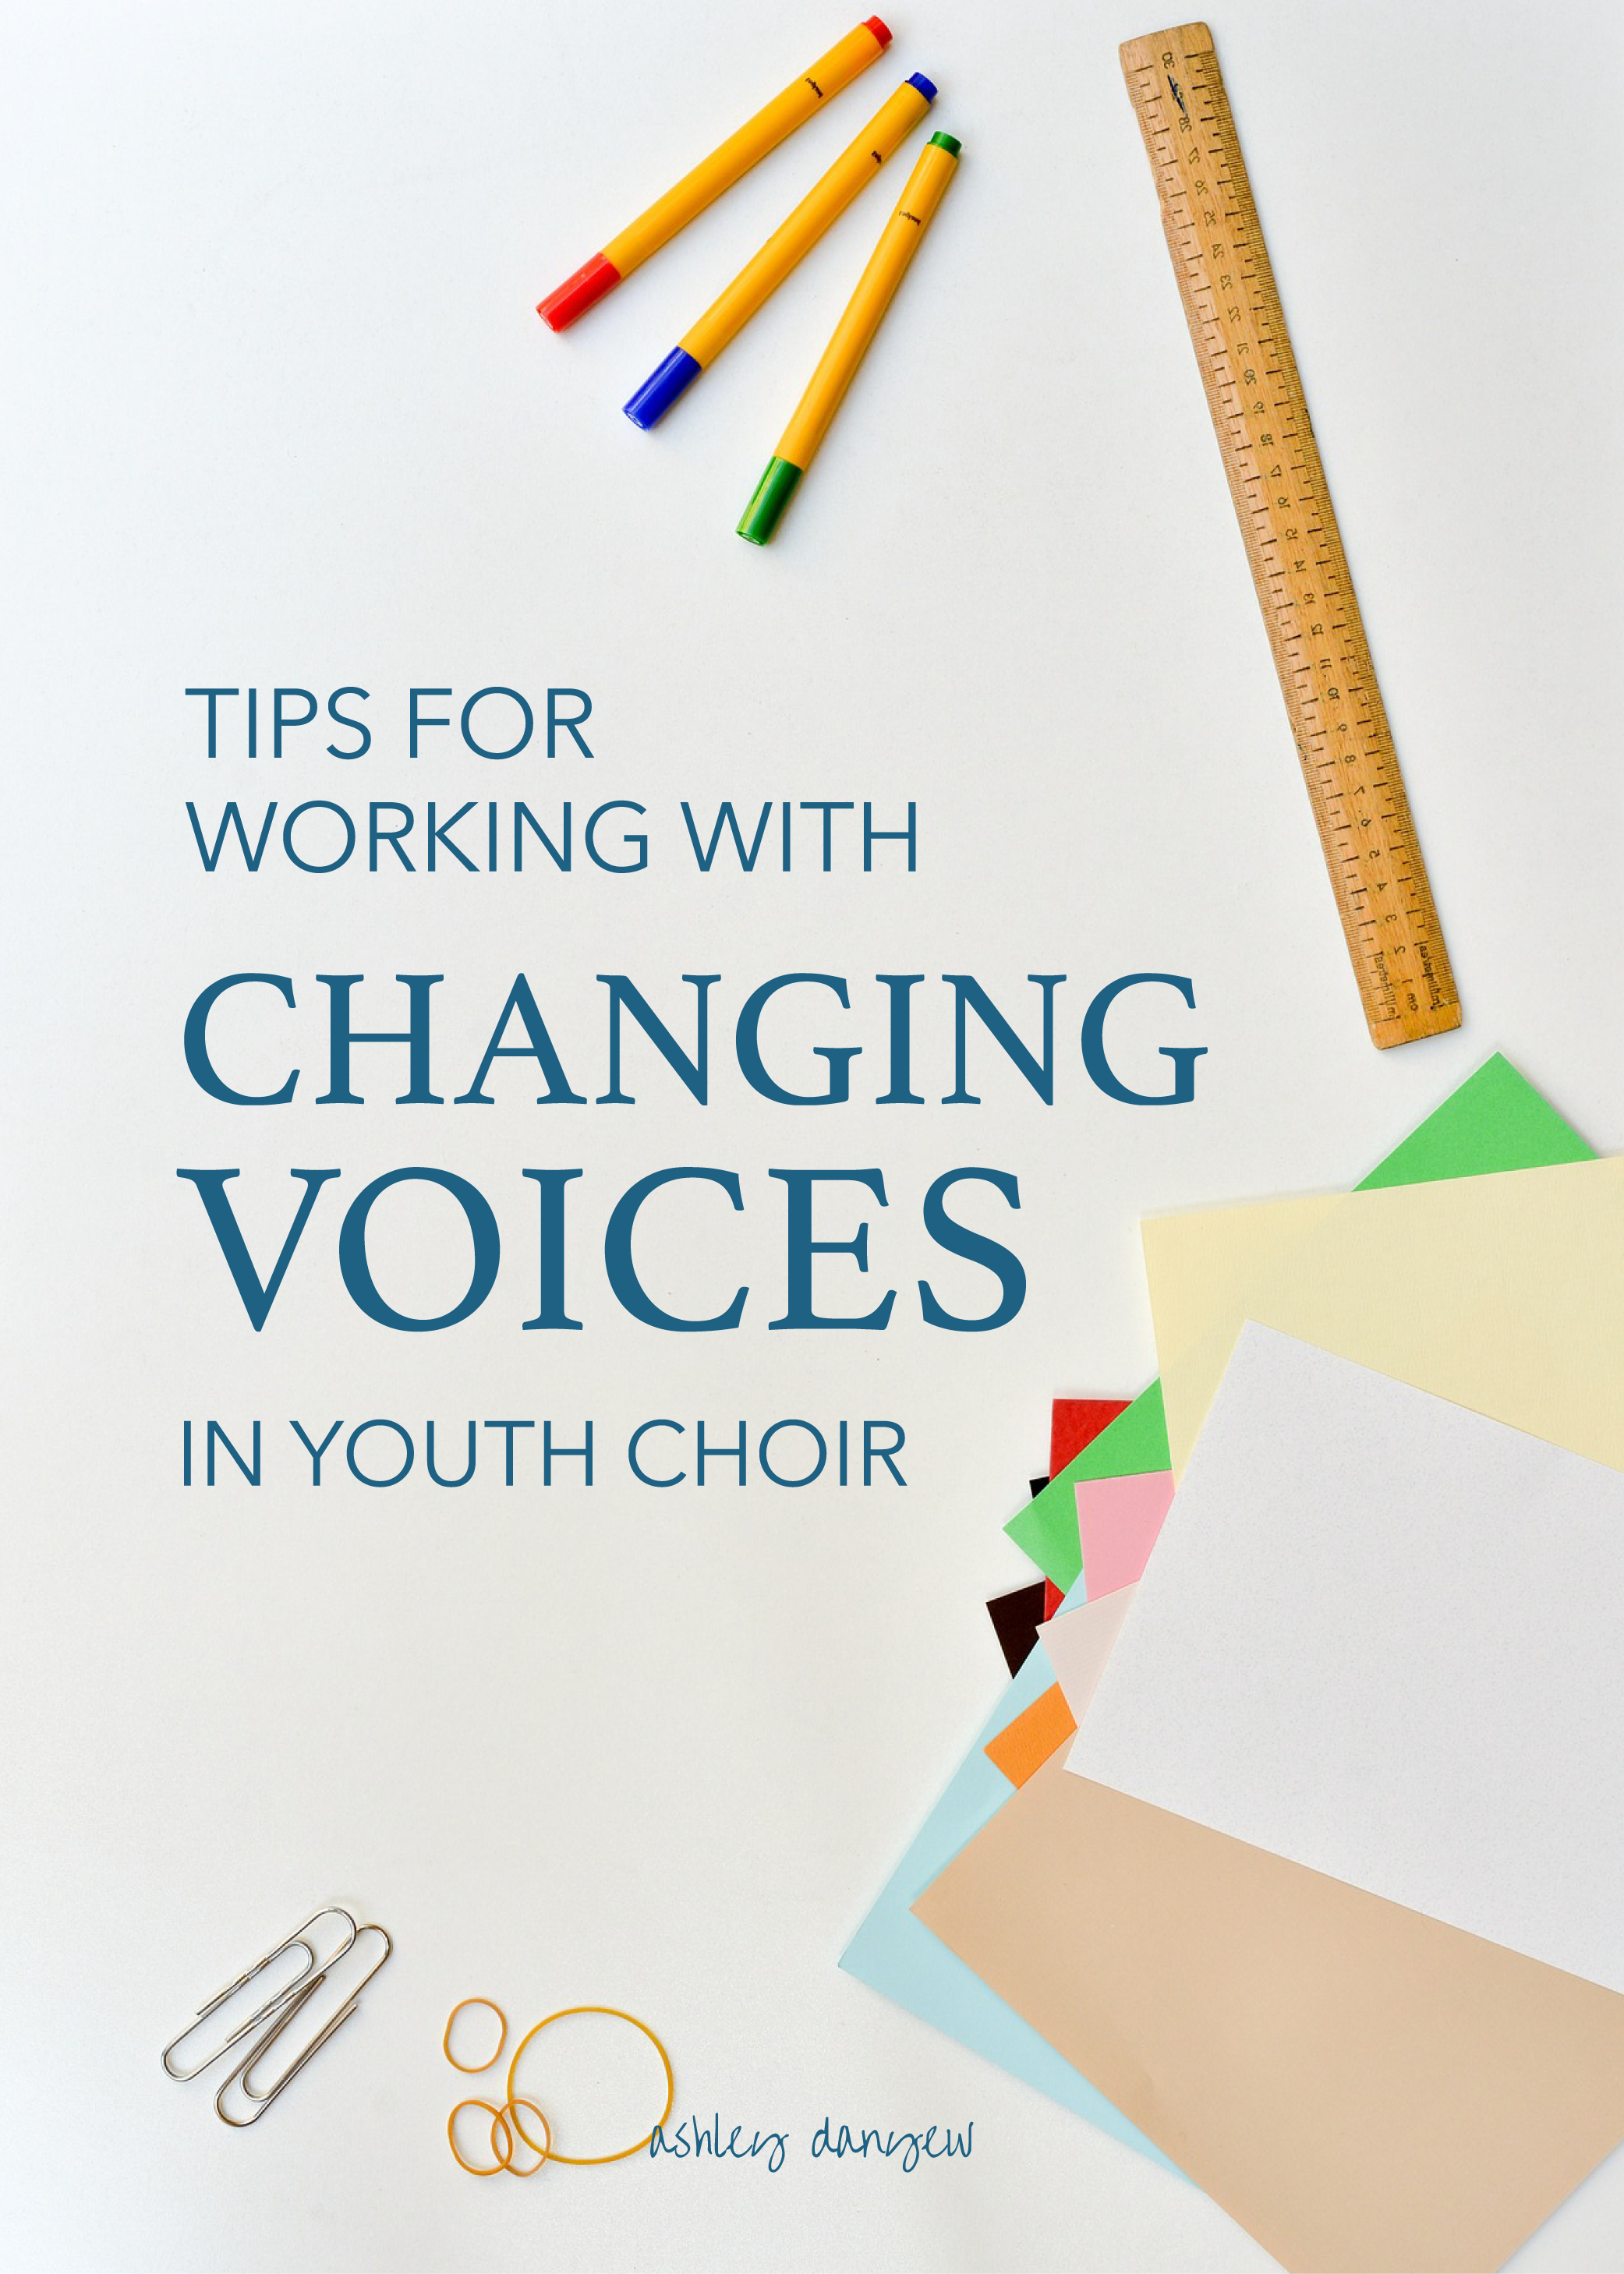 Tips-for-Working-with-Changing-Voices-in-Youth-Choir-01.png